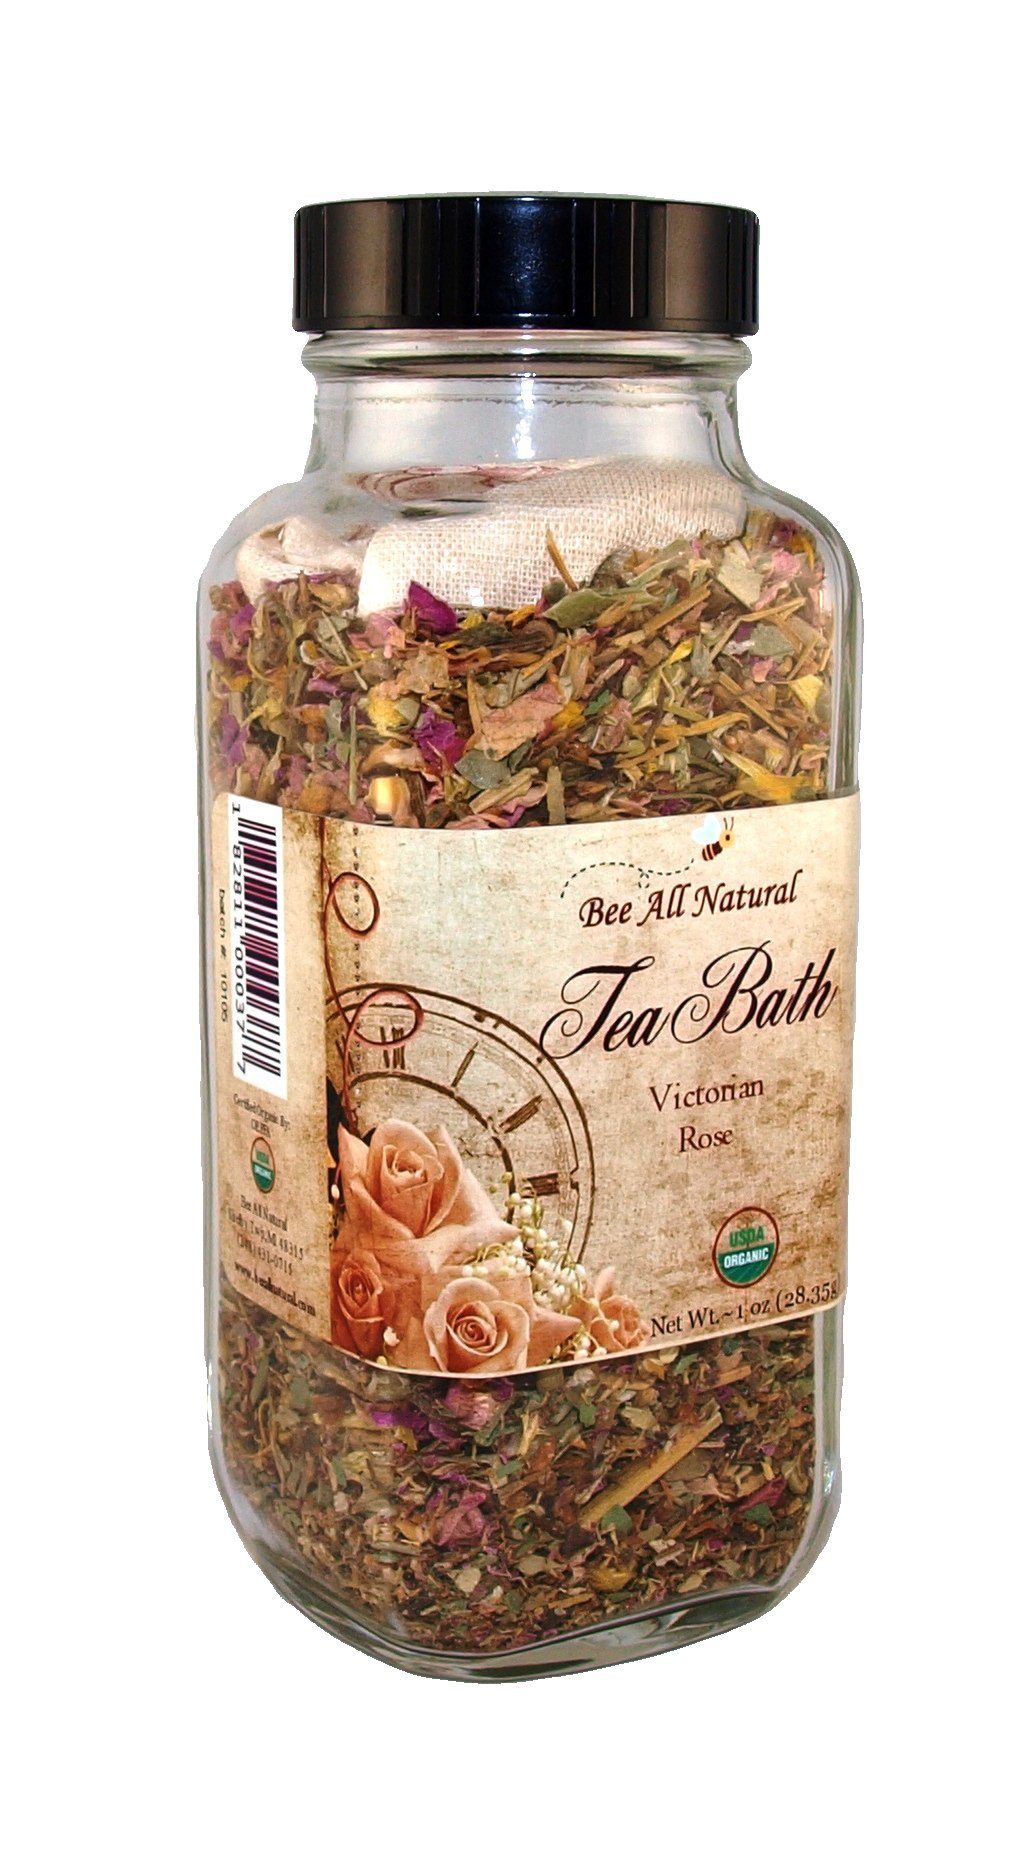 Bee All Natural Organic Tea Bath, Victorian Rose, 1-Ounce Jar by Bee All Natural (Image #1)